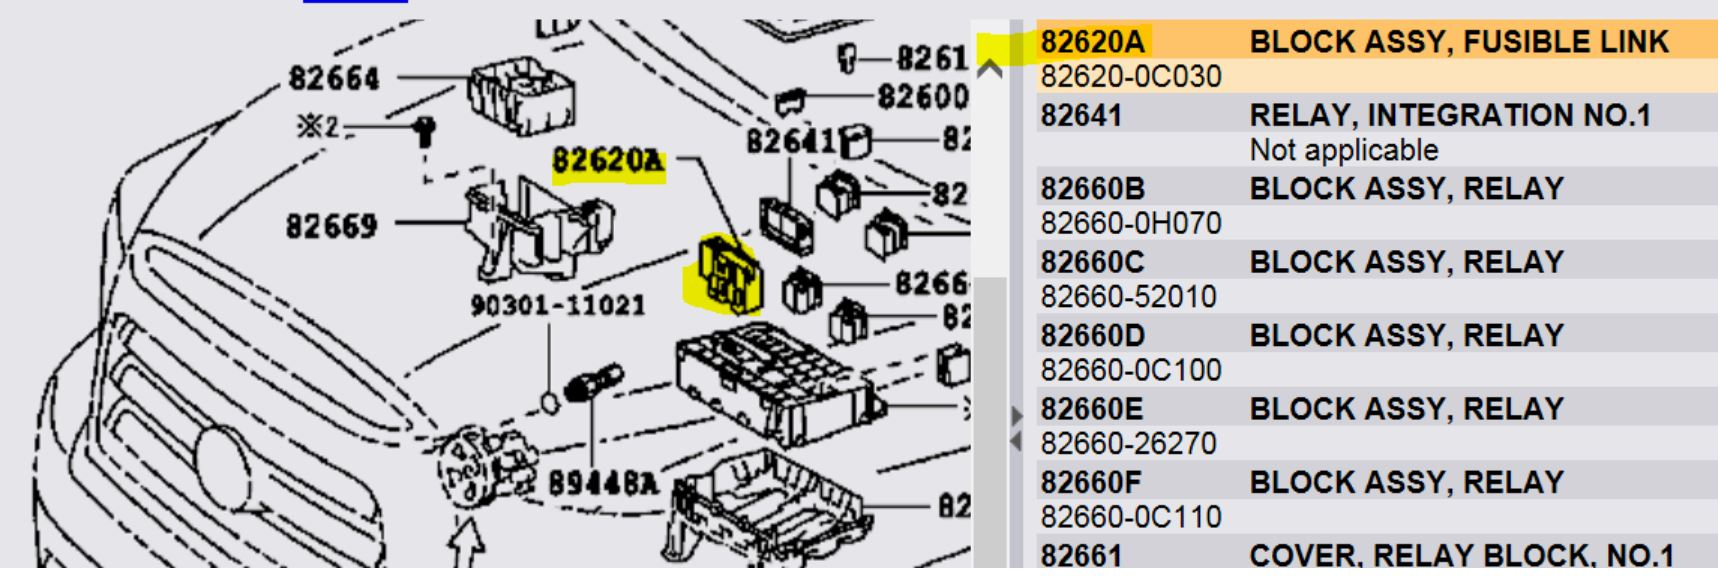 2013 Toyota Tundra Fuse Box Location in addition Toyota Camry 2010 Fuse Box Diagram besides Discussion T18037 ds603450 as well 2010 Toyota Corolla Parts Diagrams besides 2002 Ford 350 Super Ford F250 Super Duty Fuse Box Diagram. on prius fuse panel location